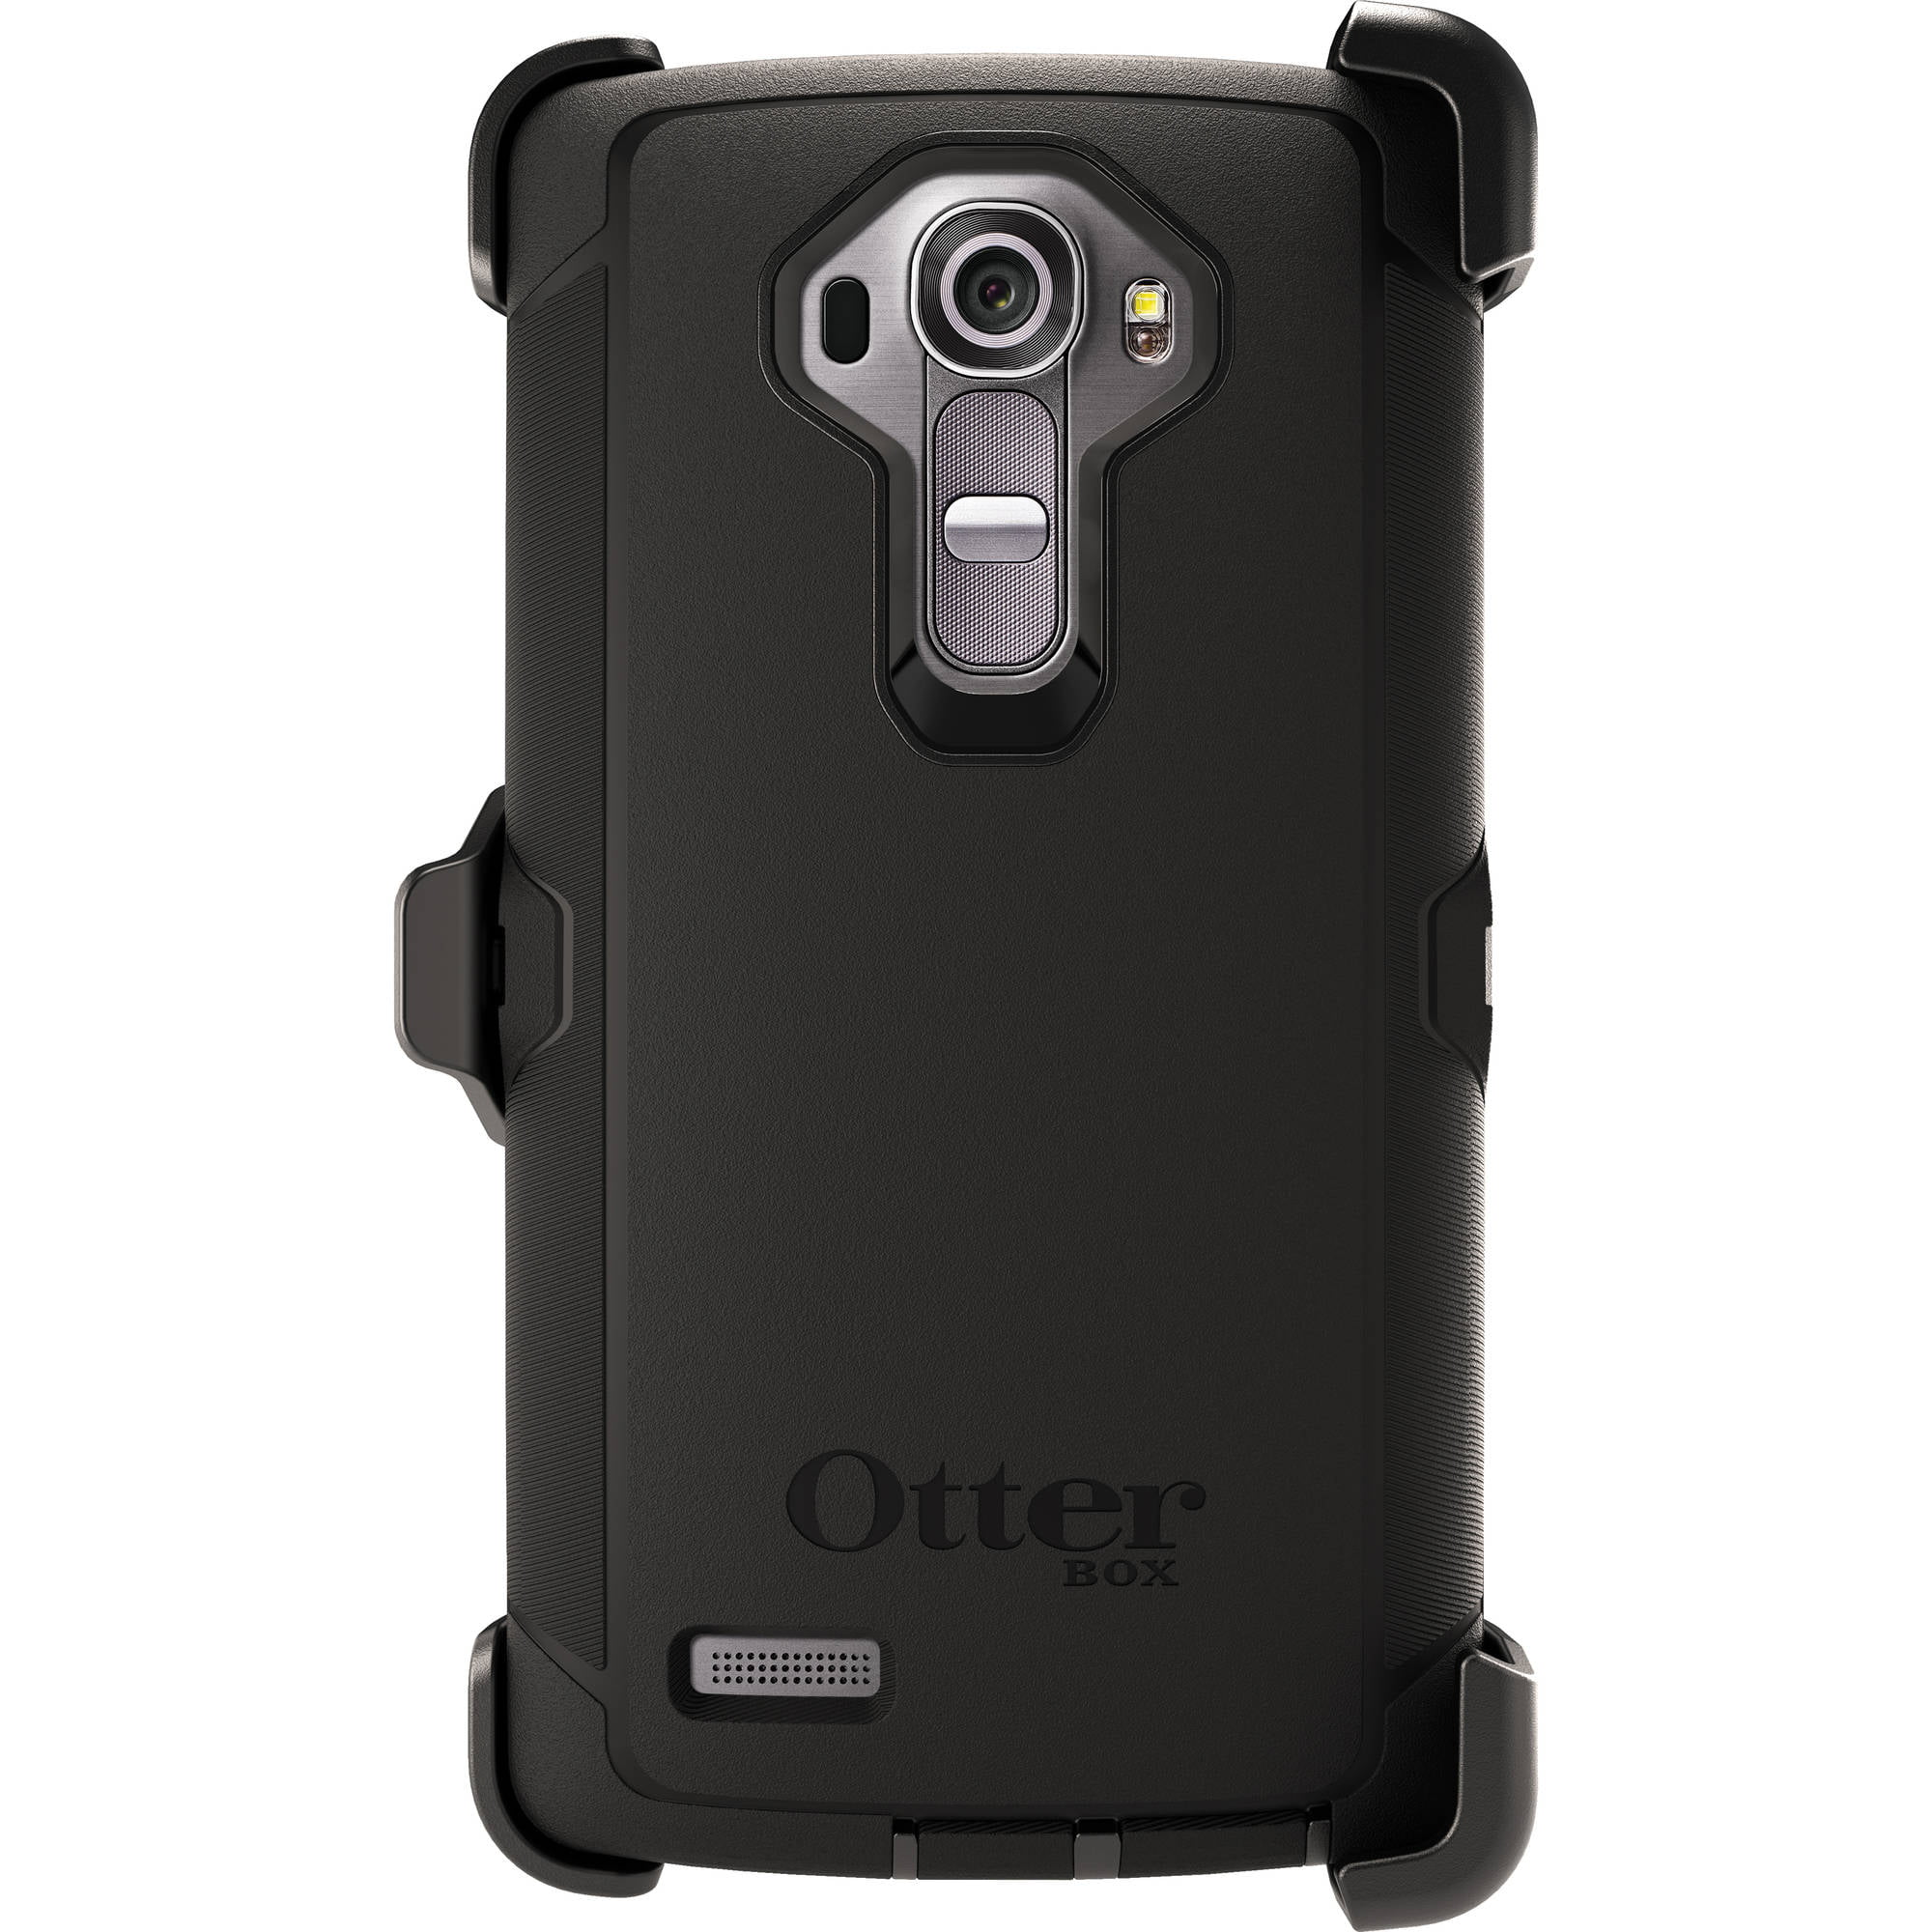 new styles e0497 c8cfe OtterBox Defender Series Case for LG G4